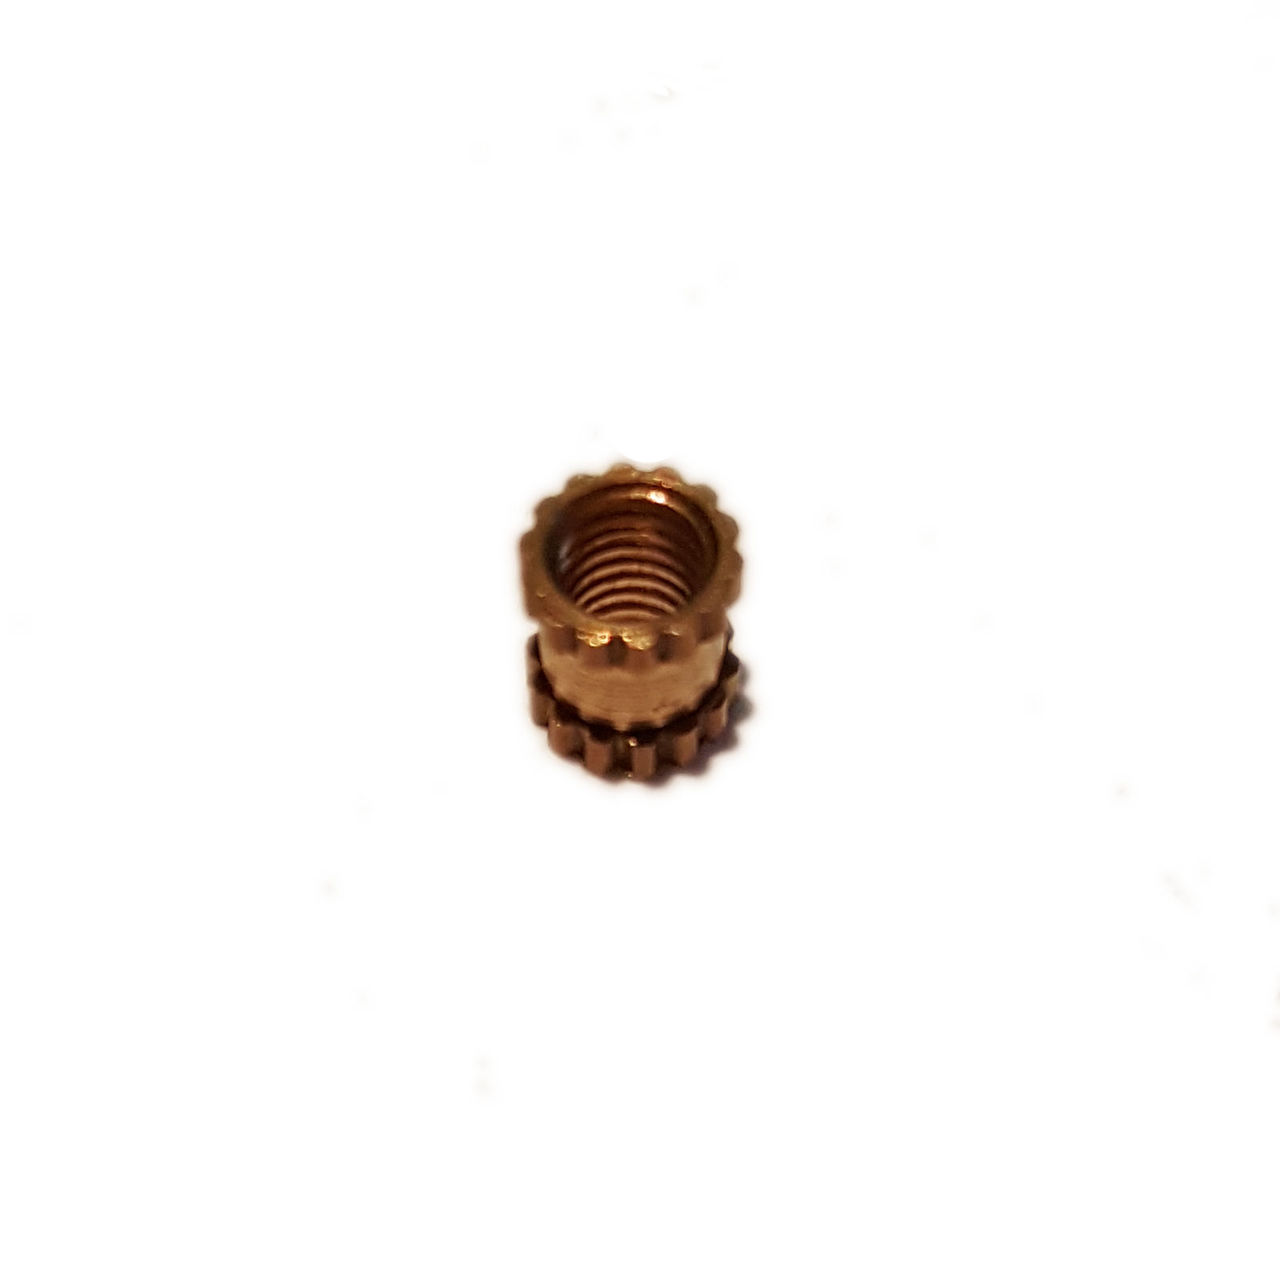 M2 x 3 5mm OD x 6mm Brass Threaded Insert